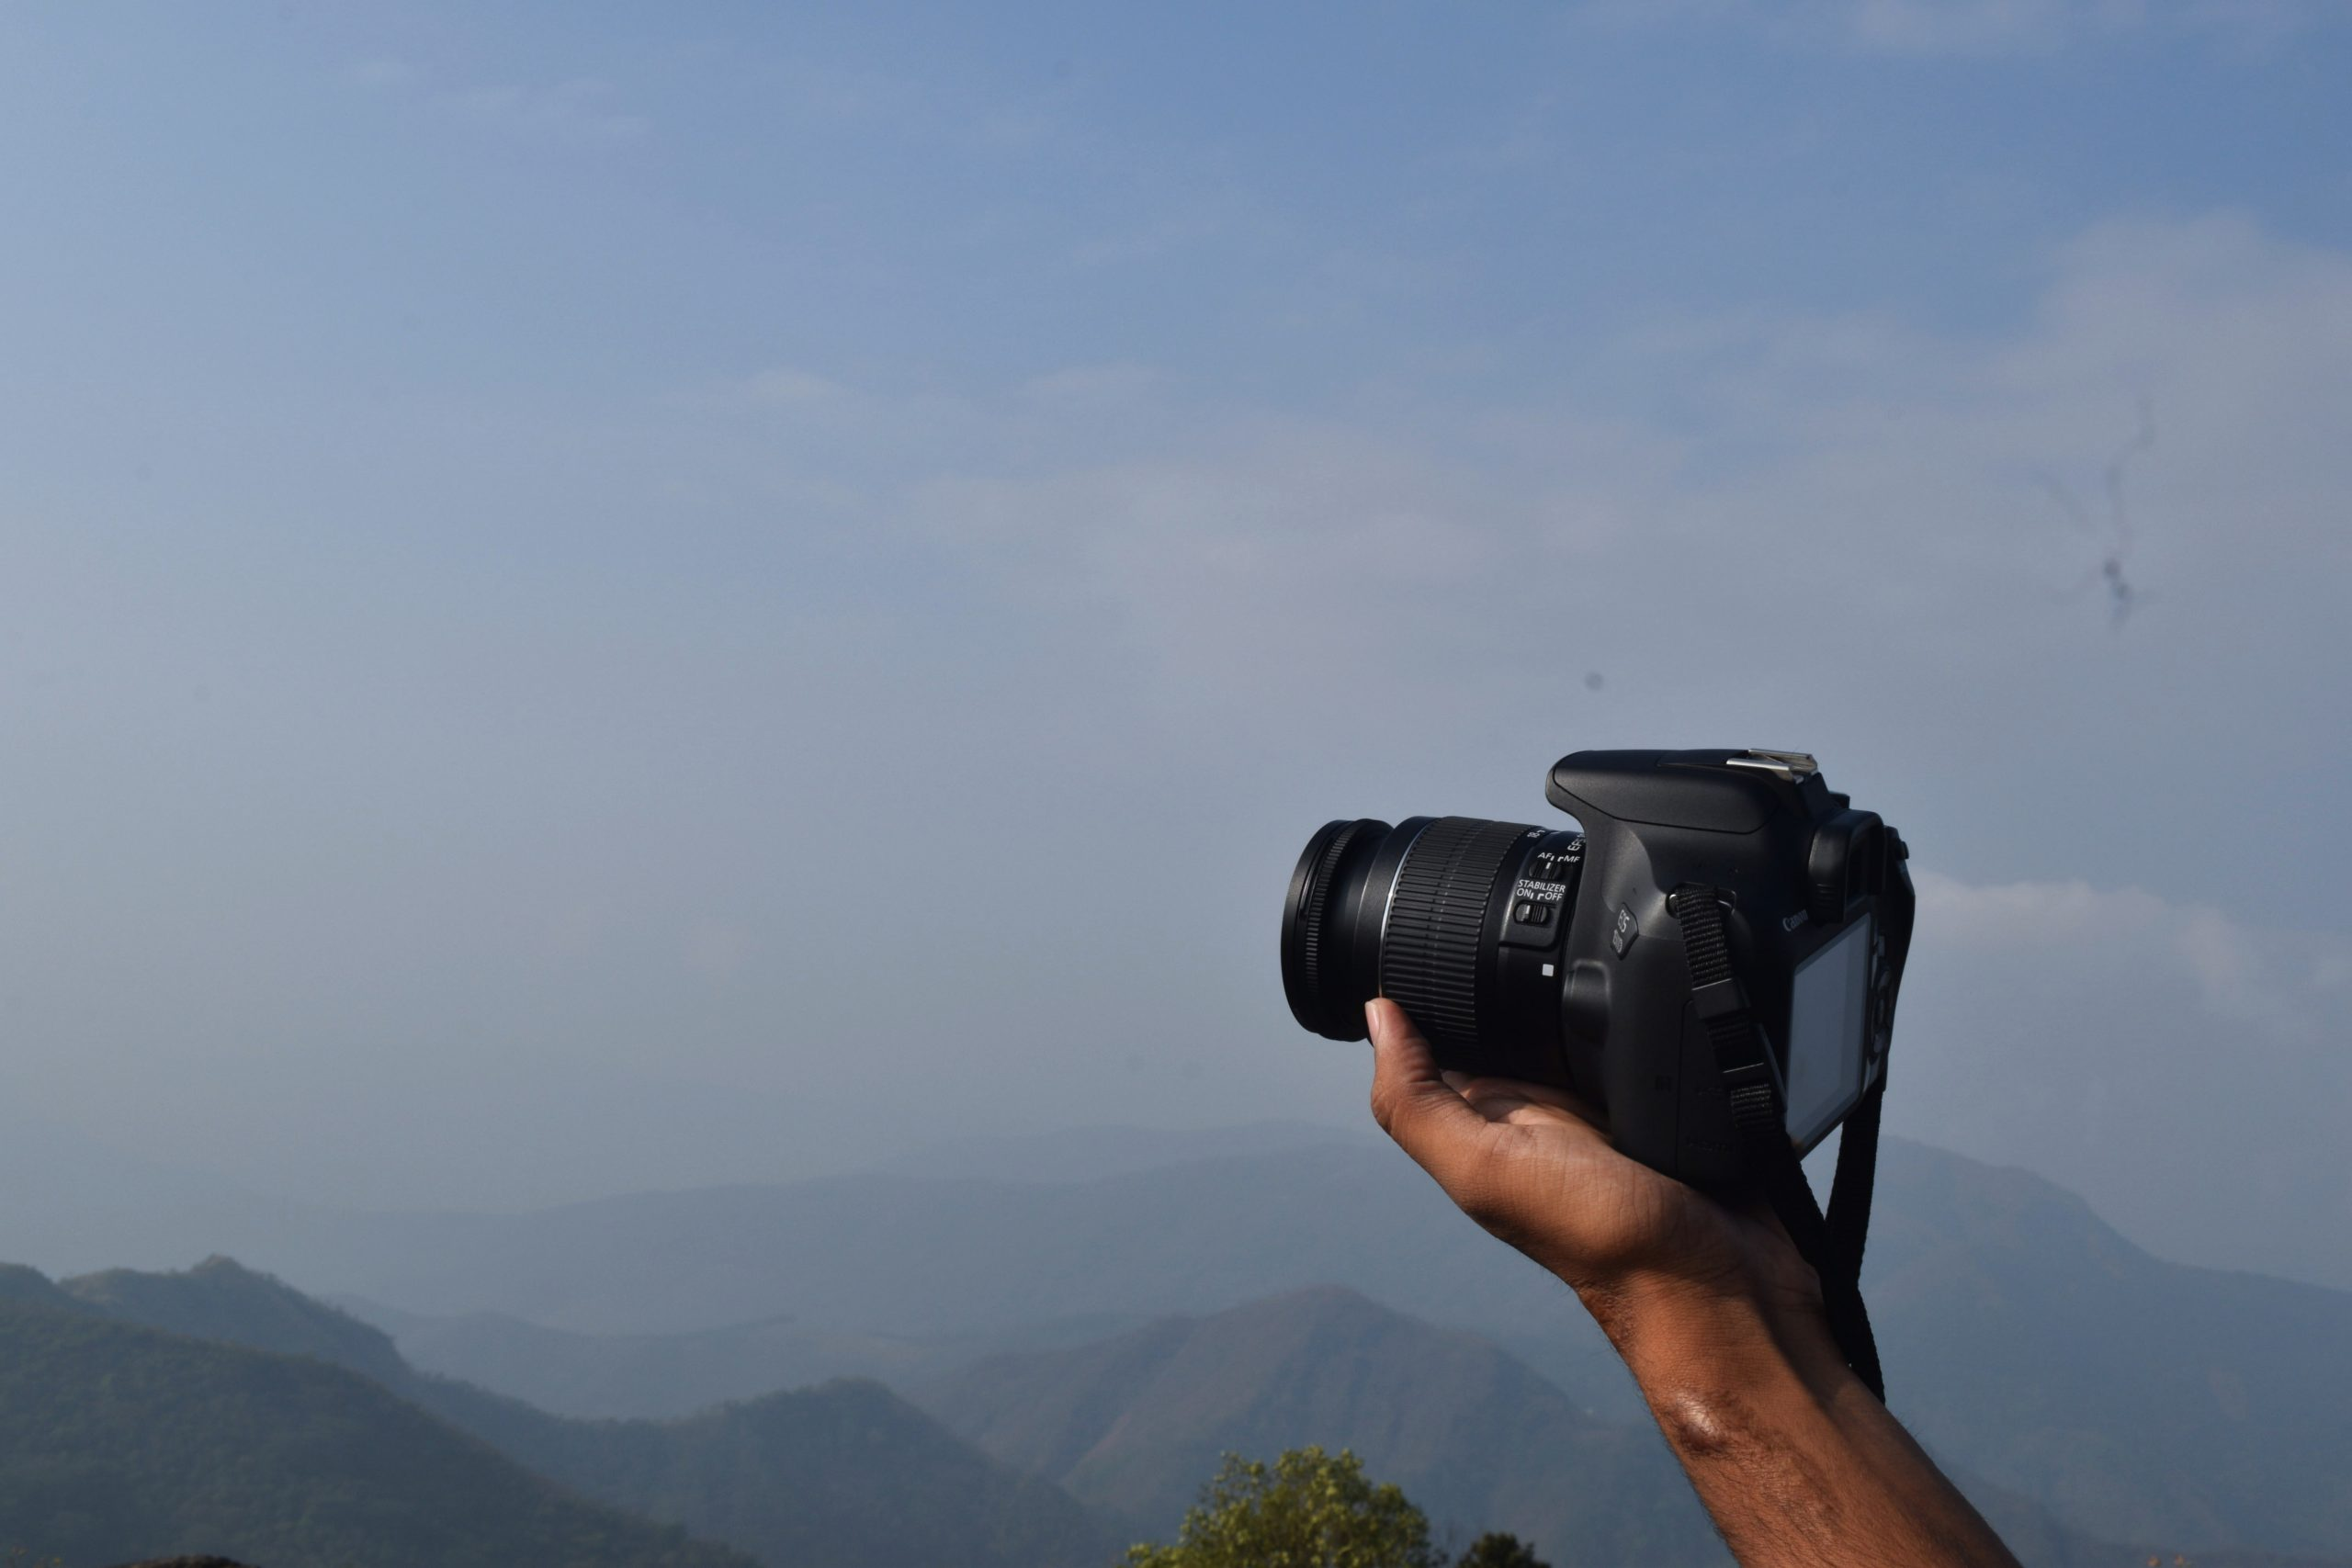 Camera in hand in the mountains